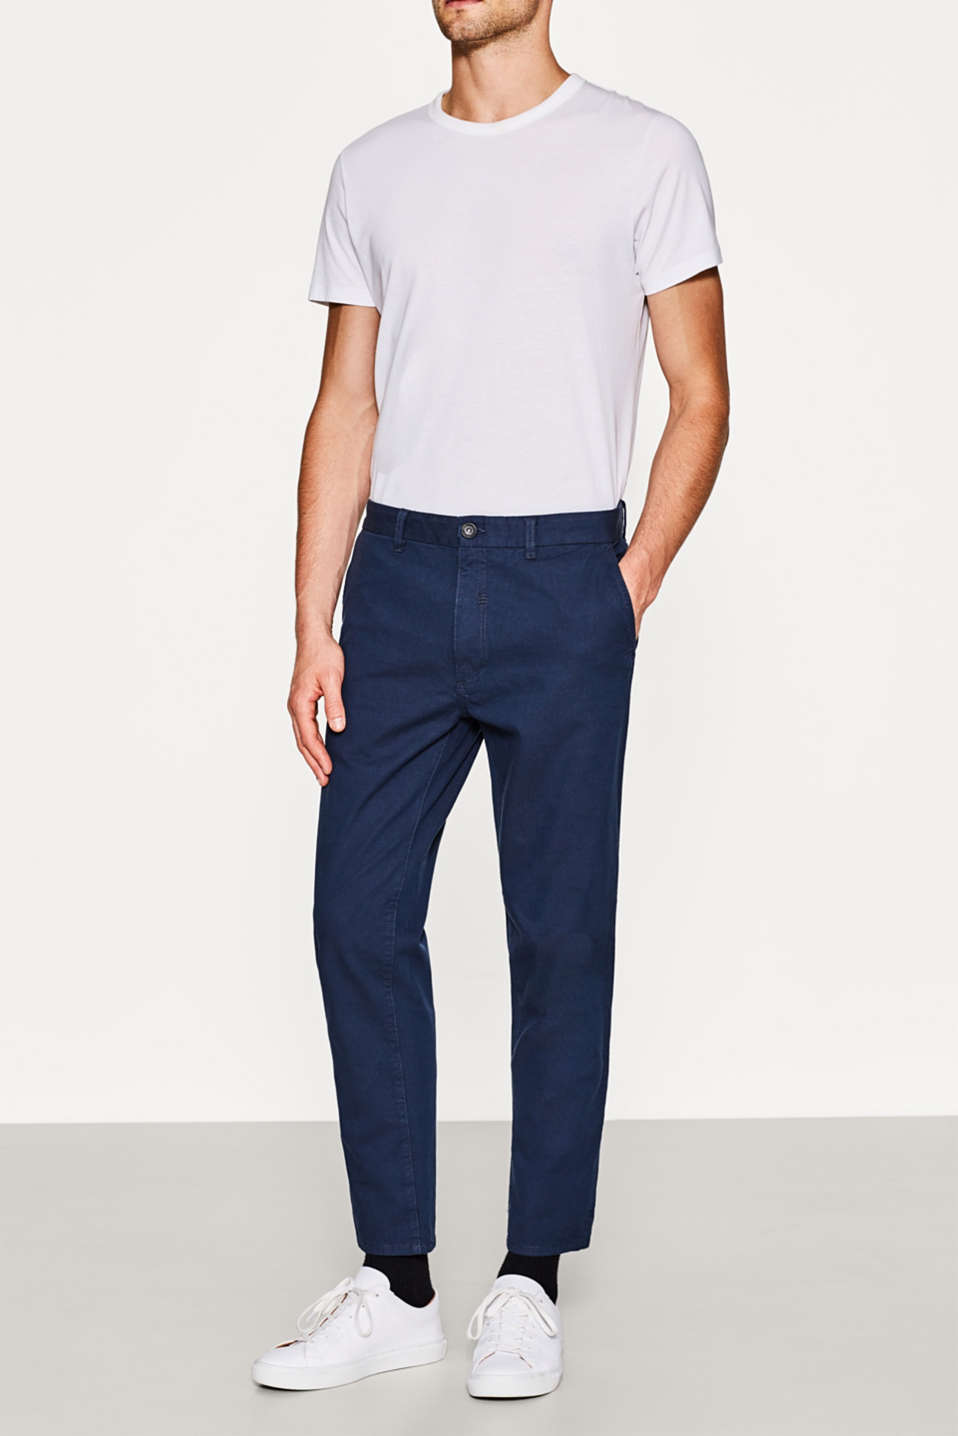 Esprit - Woven stretch cotton chinos